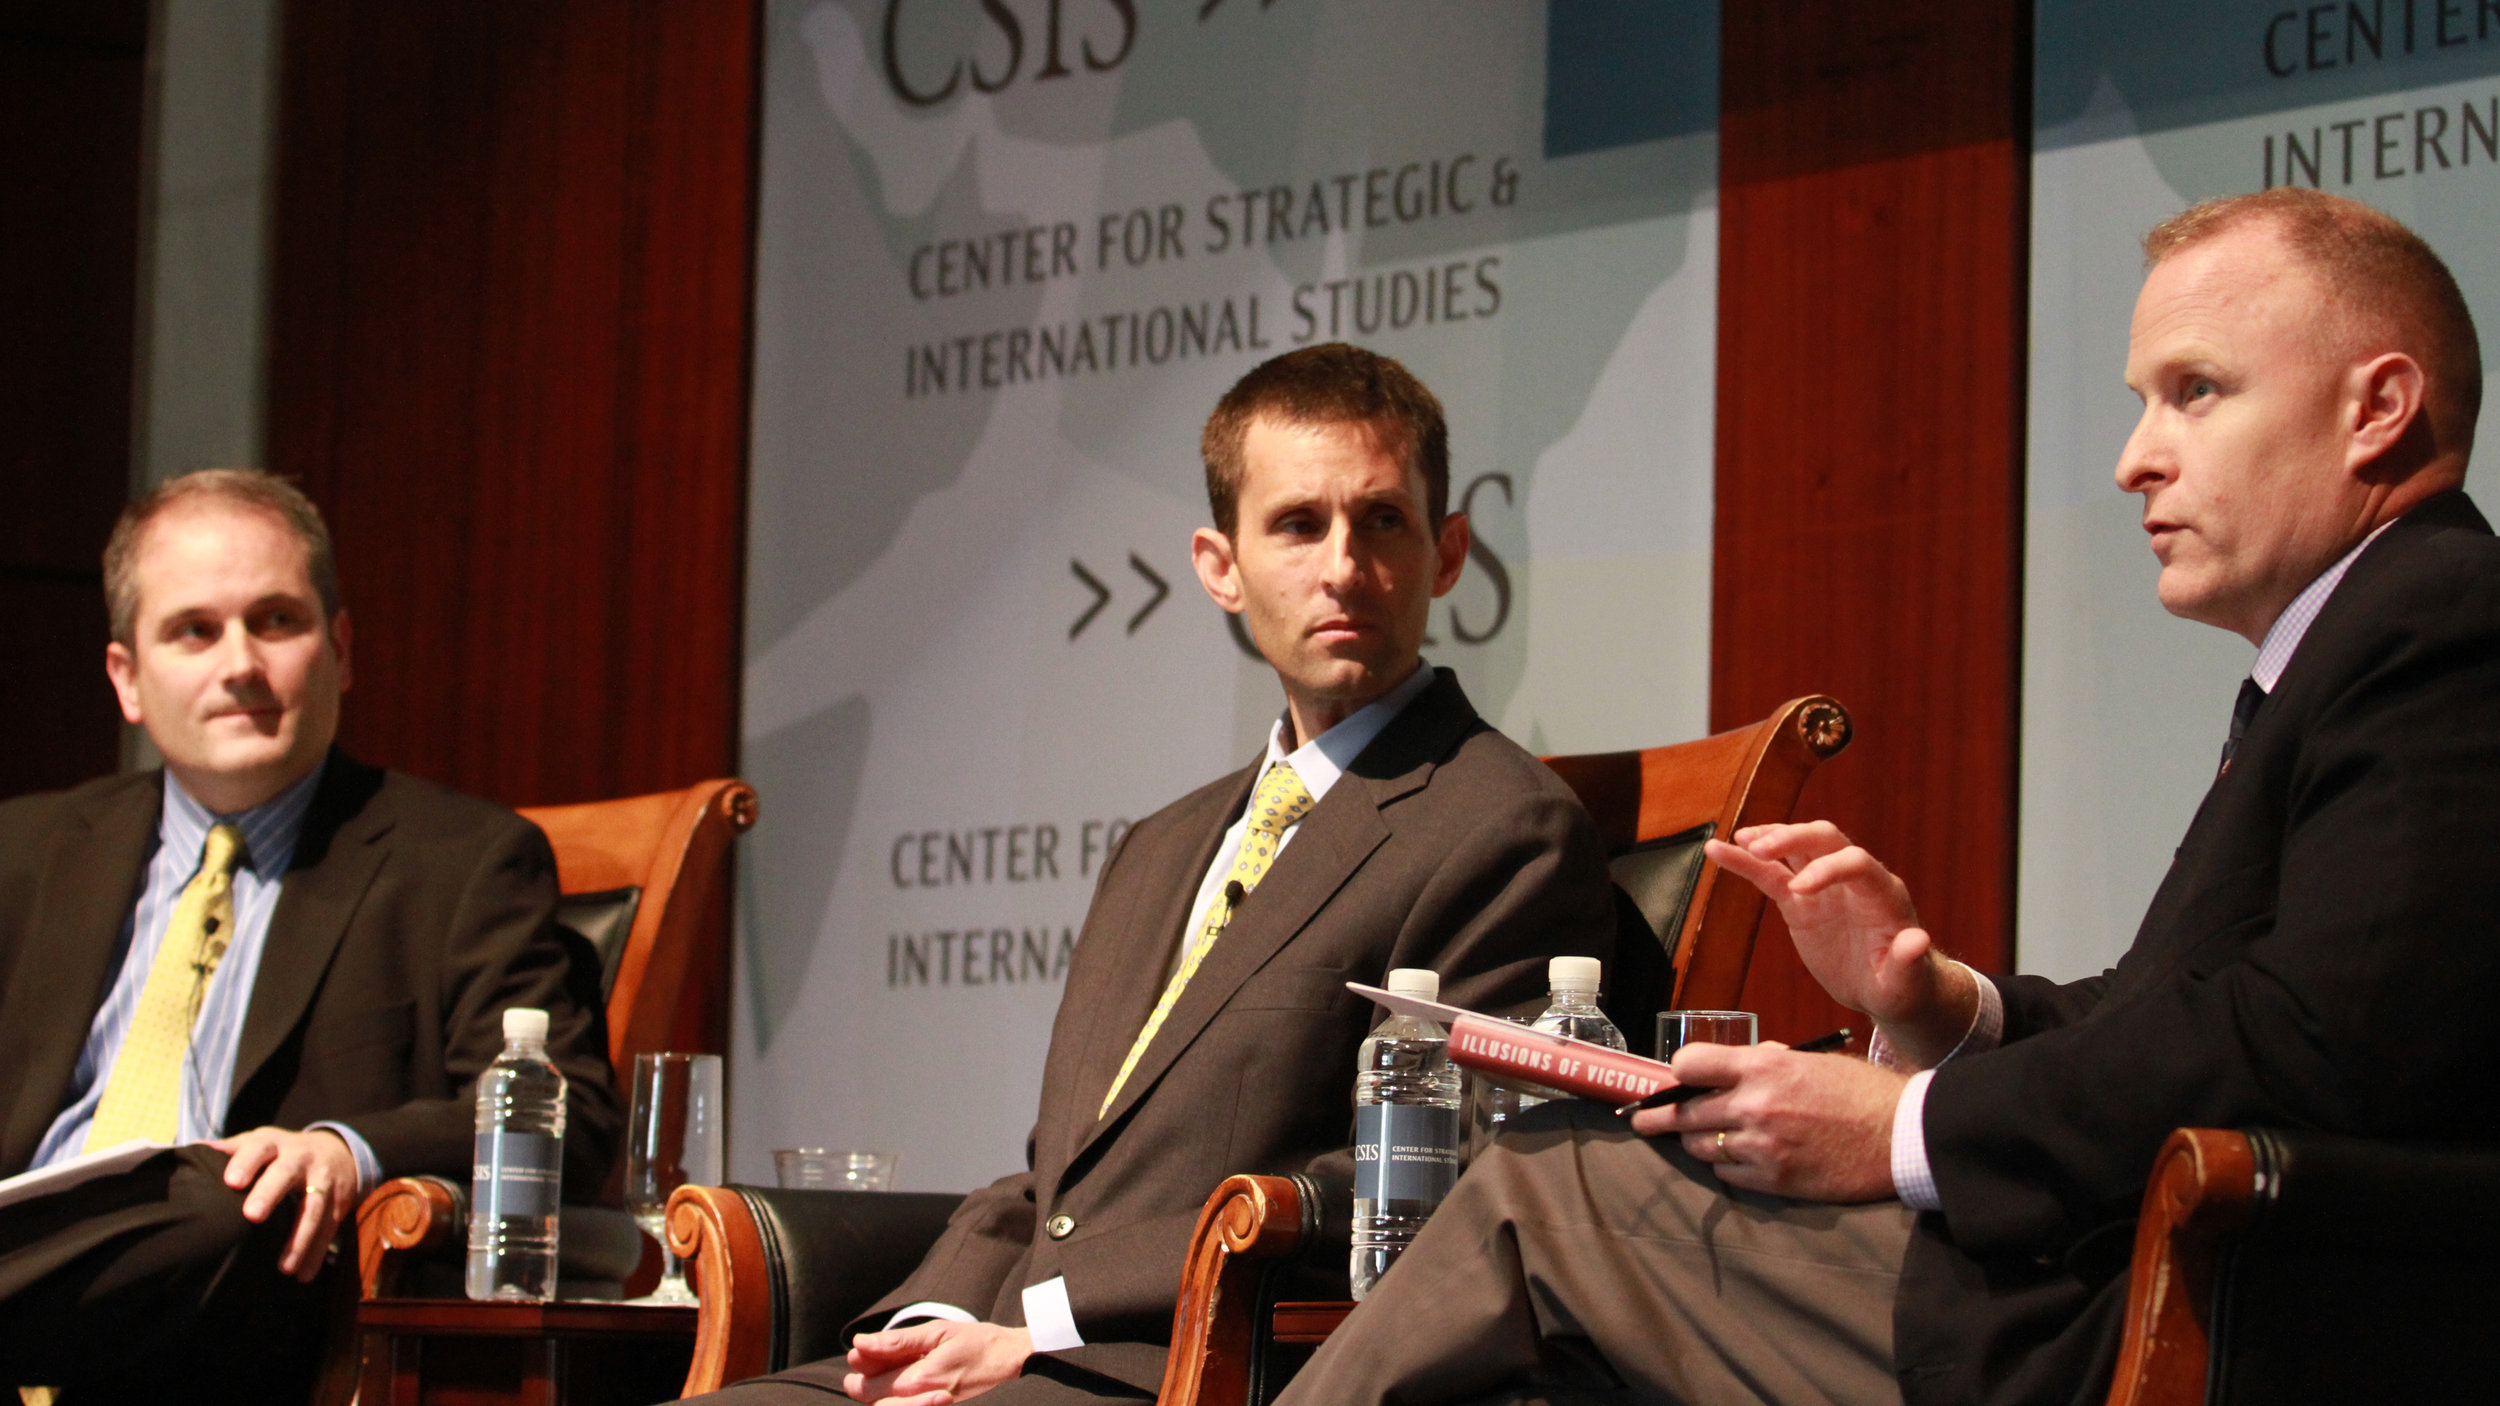 Carter Malkasian (center) talks with Dan Marston (right) at the Center for Strategic and International Studies.